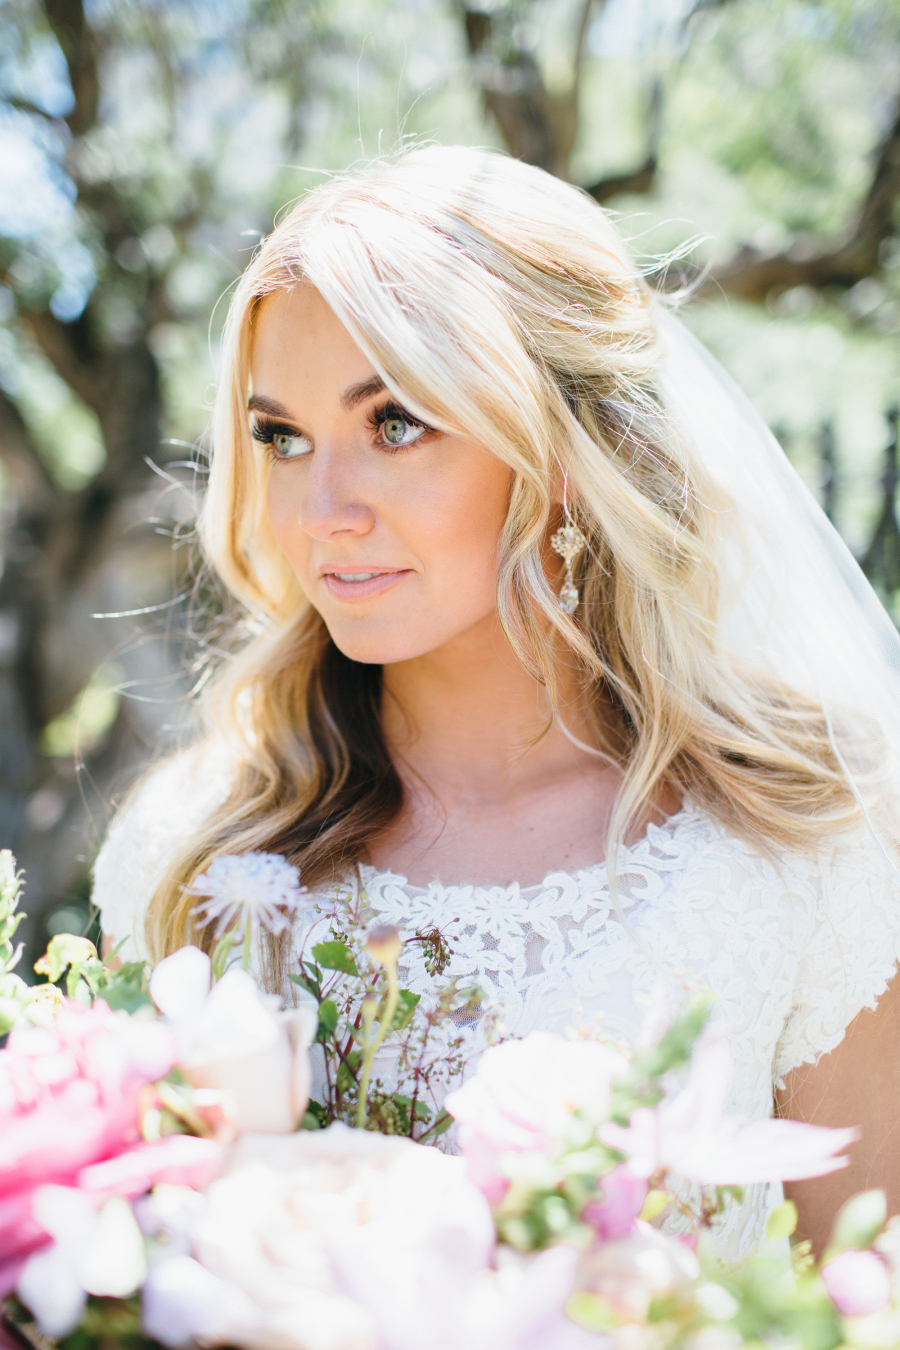 who is the most famous wedding planner